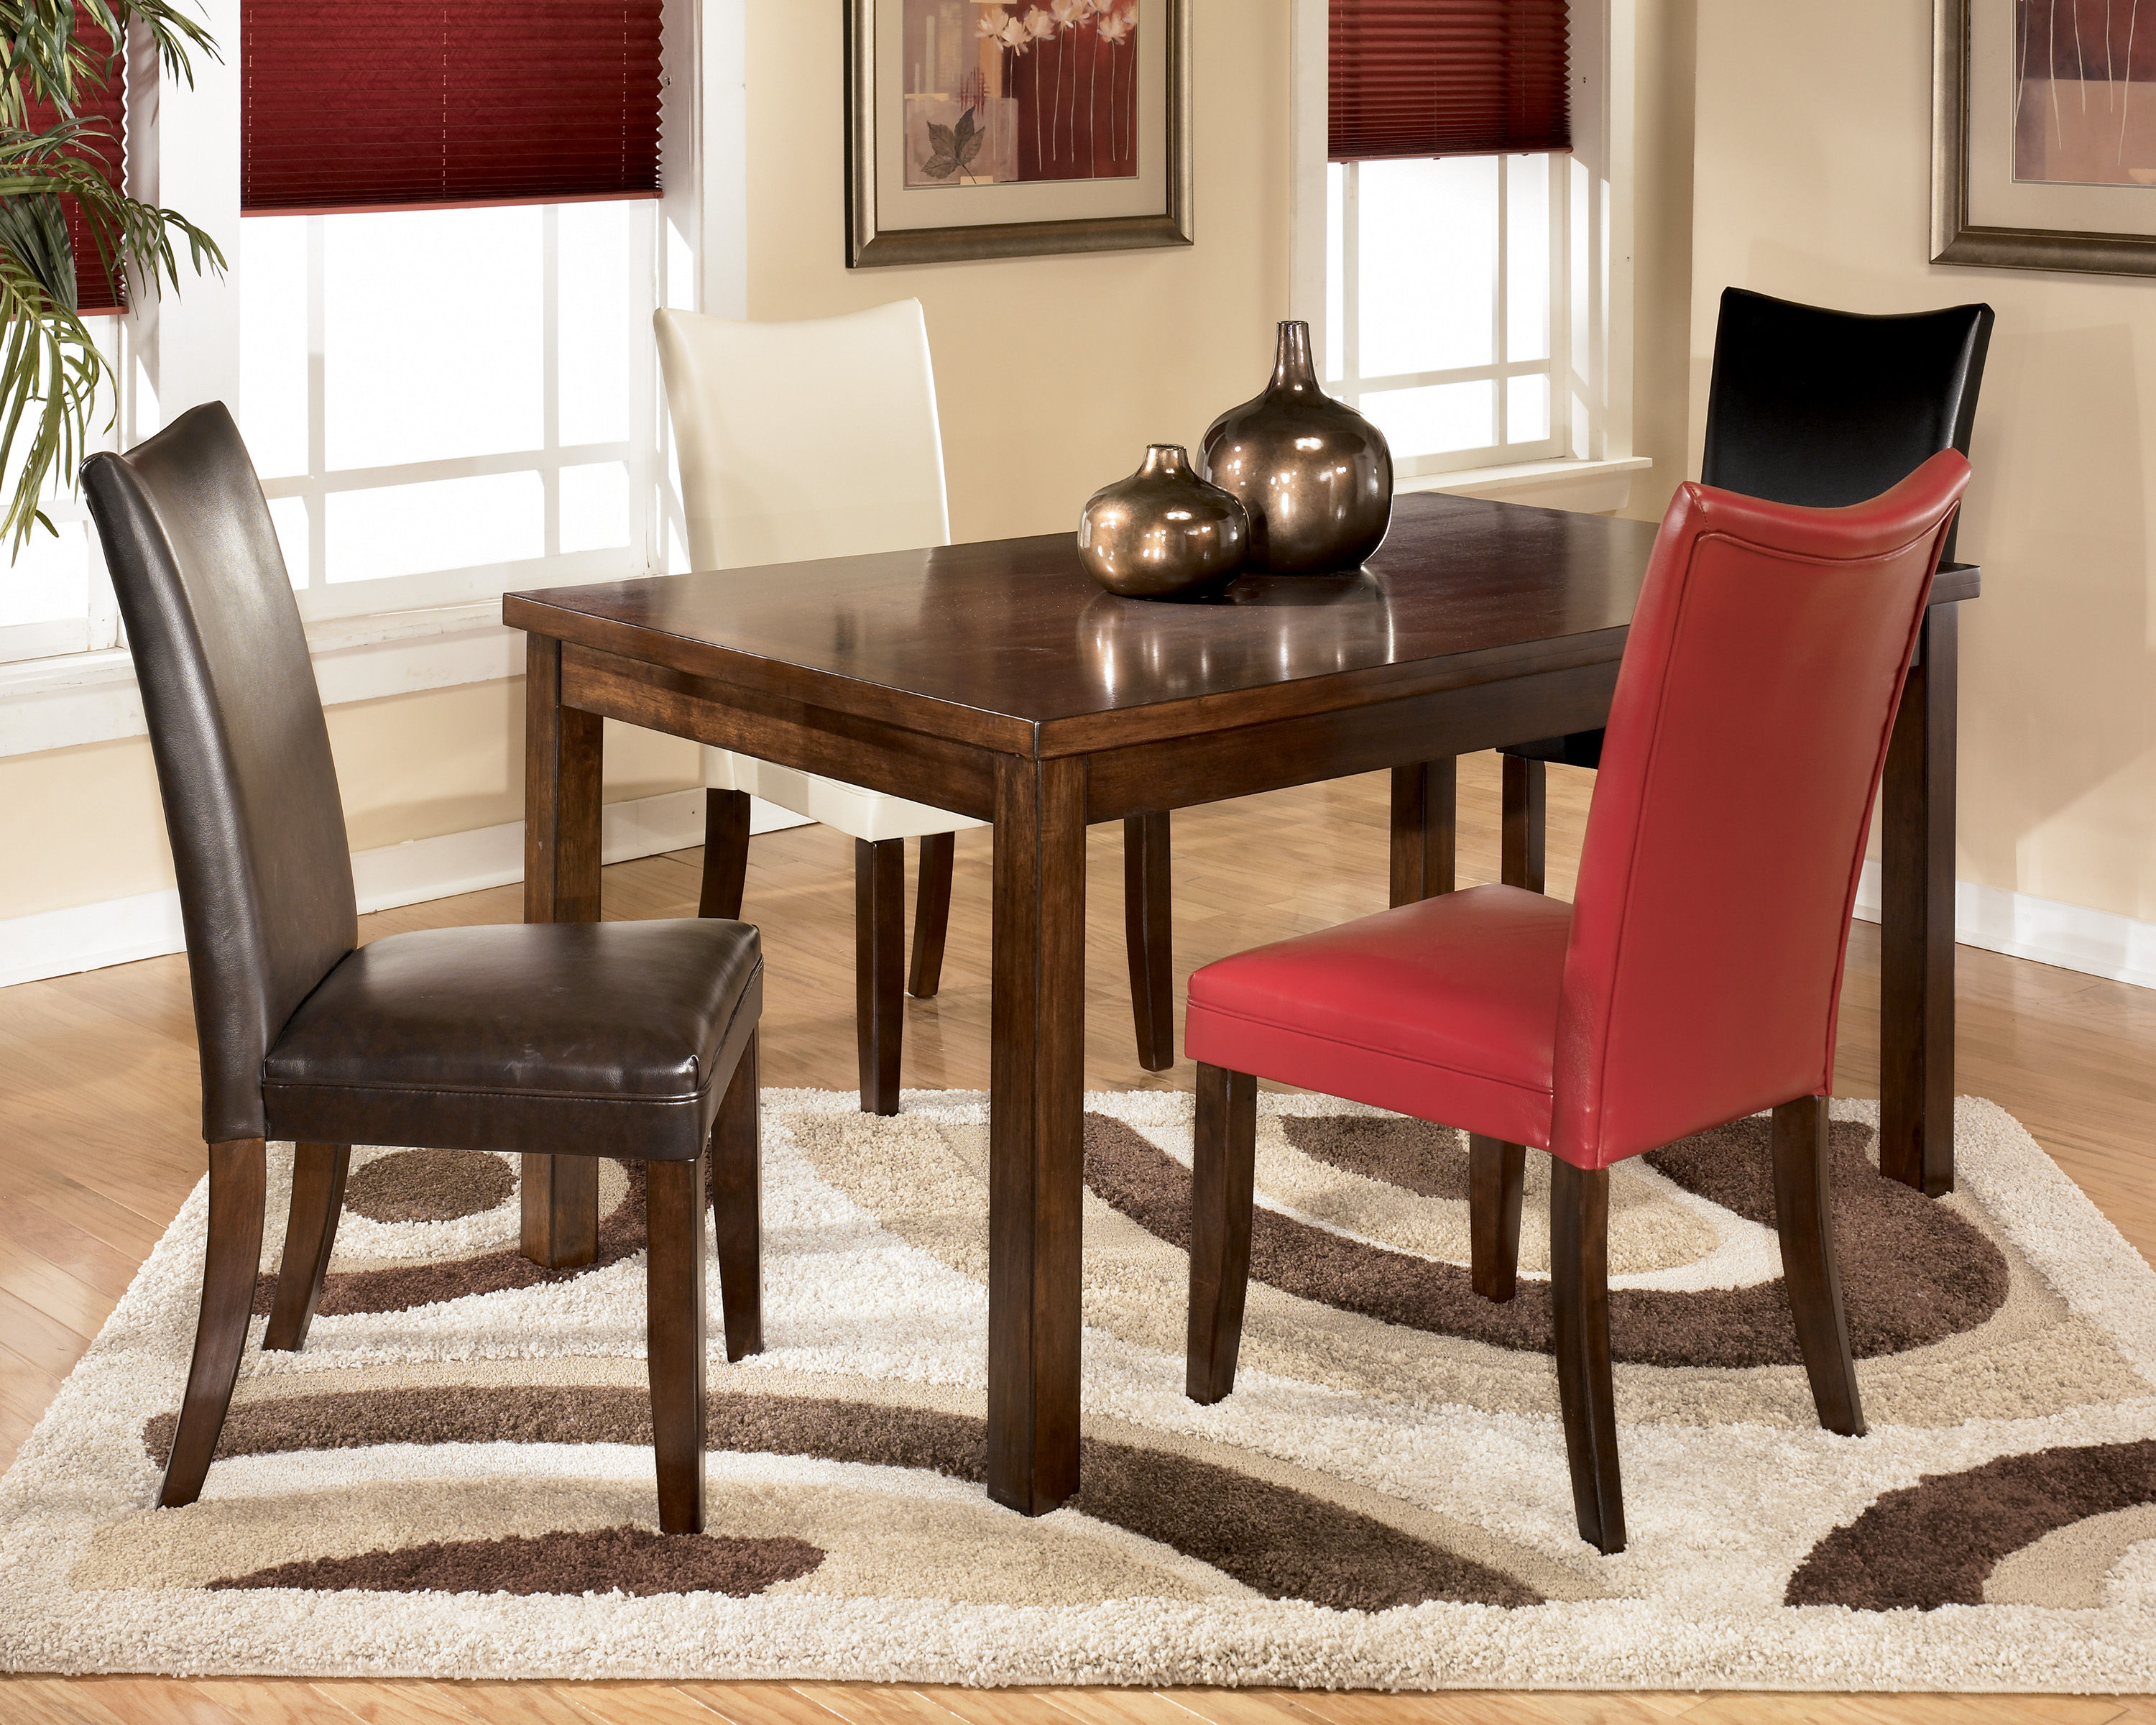 Ashley Furniture Charrell Dining Room Set The Classy Home